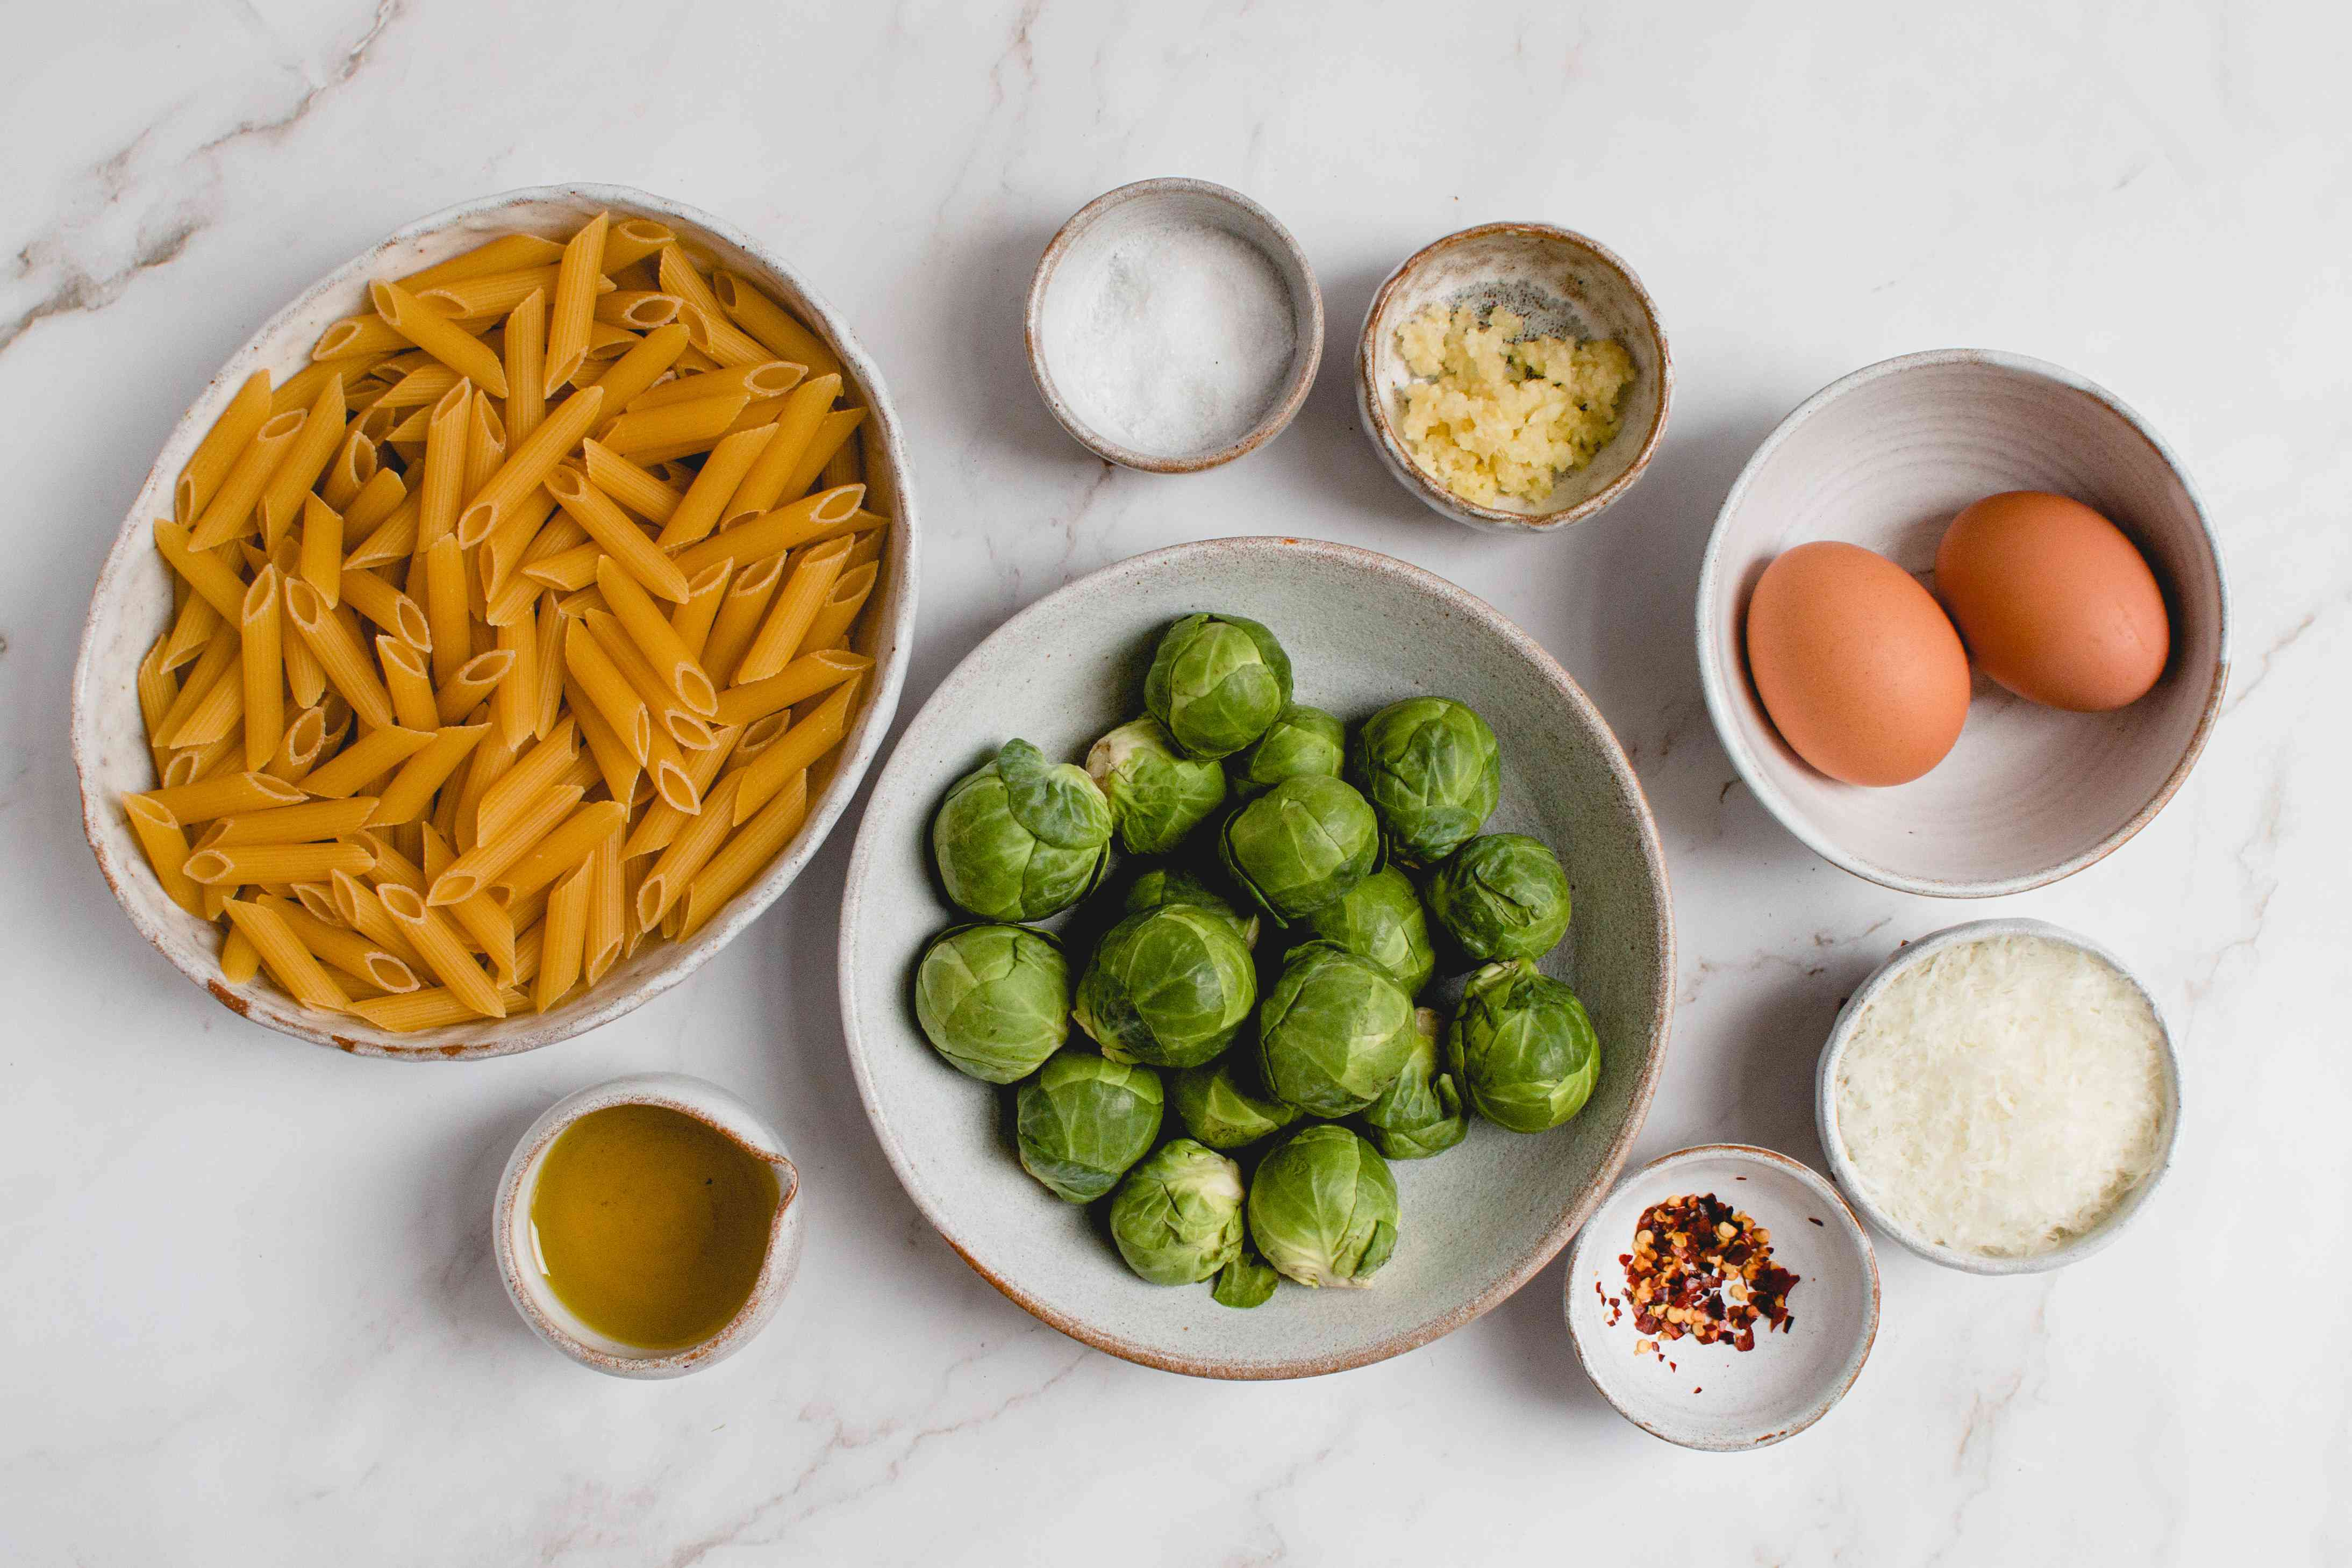 Pasta With Brussels Sprouts and Pecorino Cheese ingredients